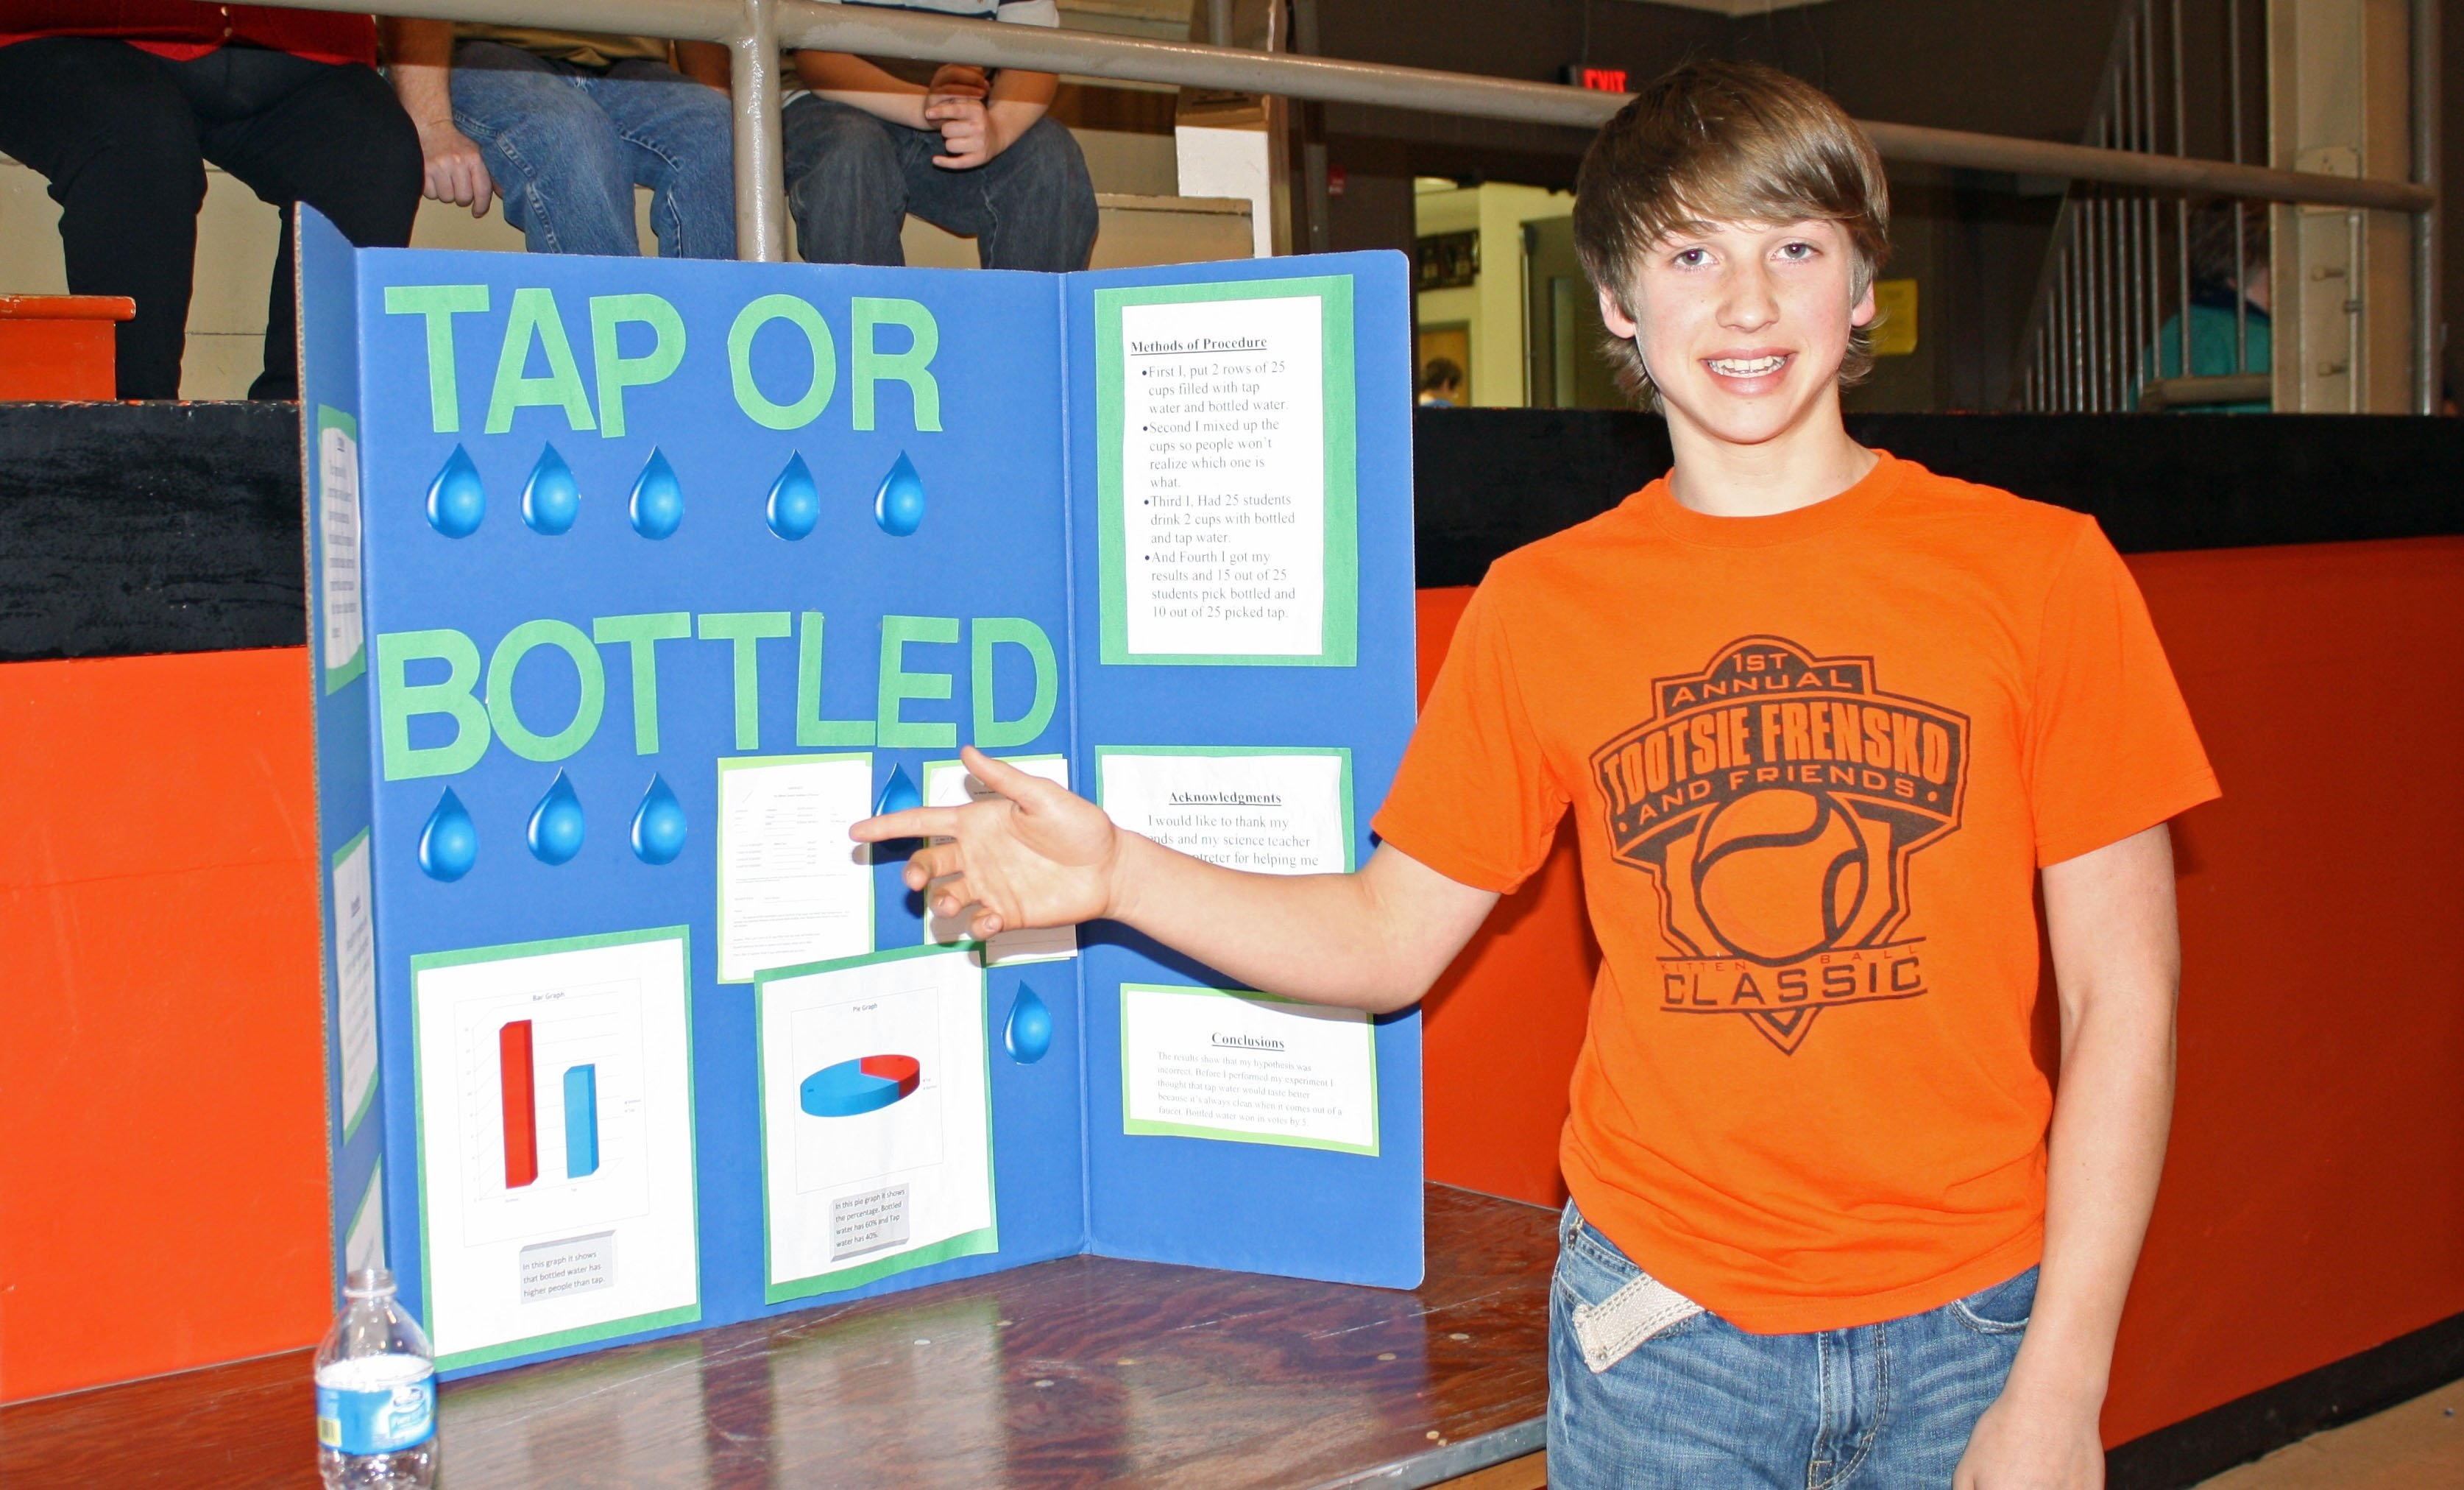 10 Most Recommended Science Fair Projects For 8Th Graders Winning Ideas 8 grade science fair projects essay academic service 19 2020